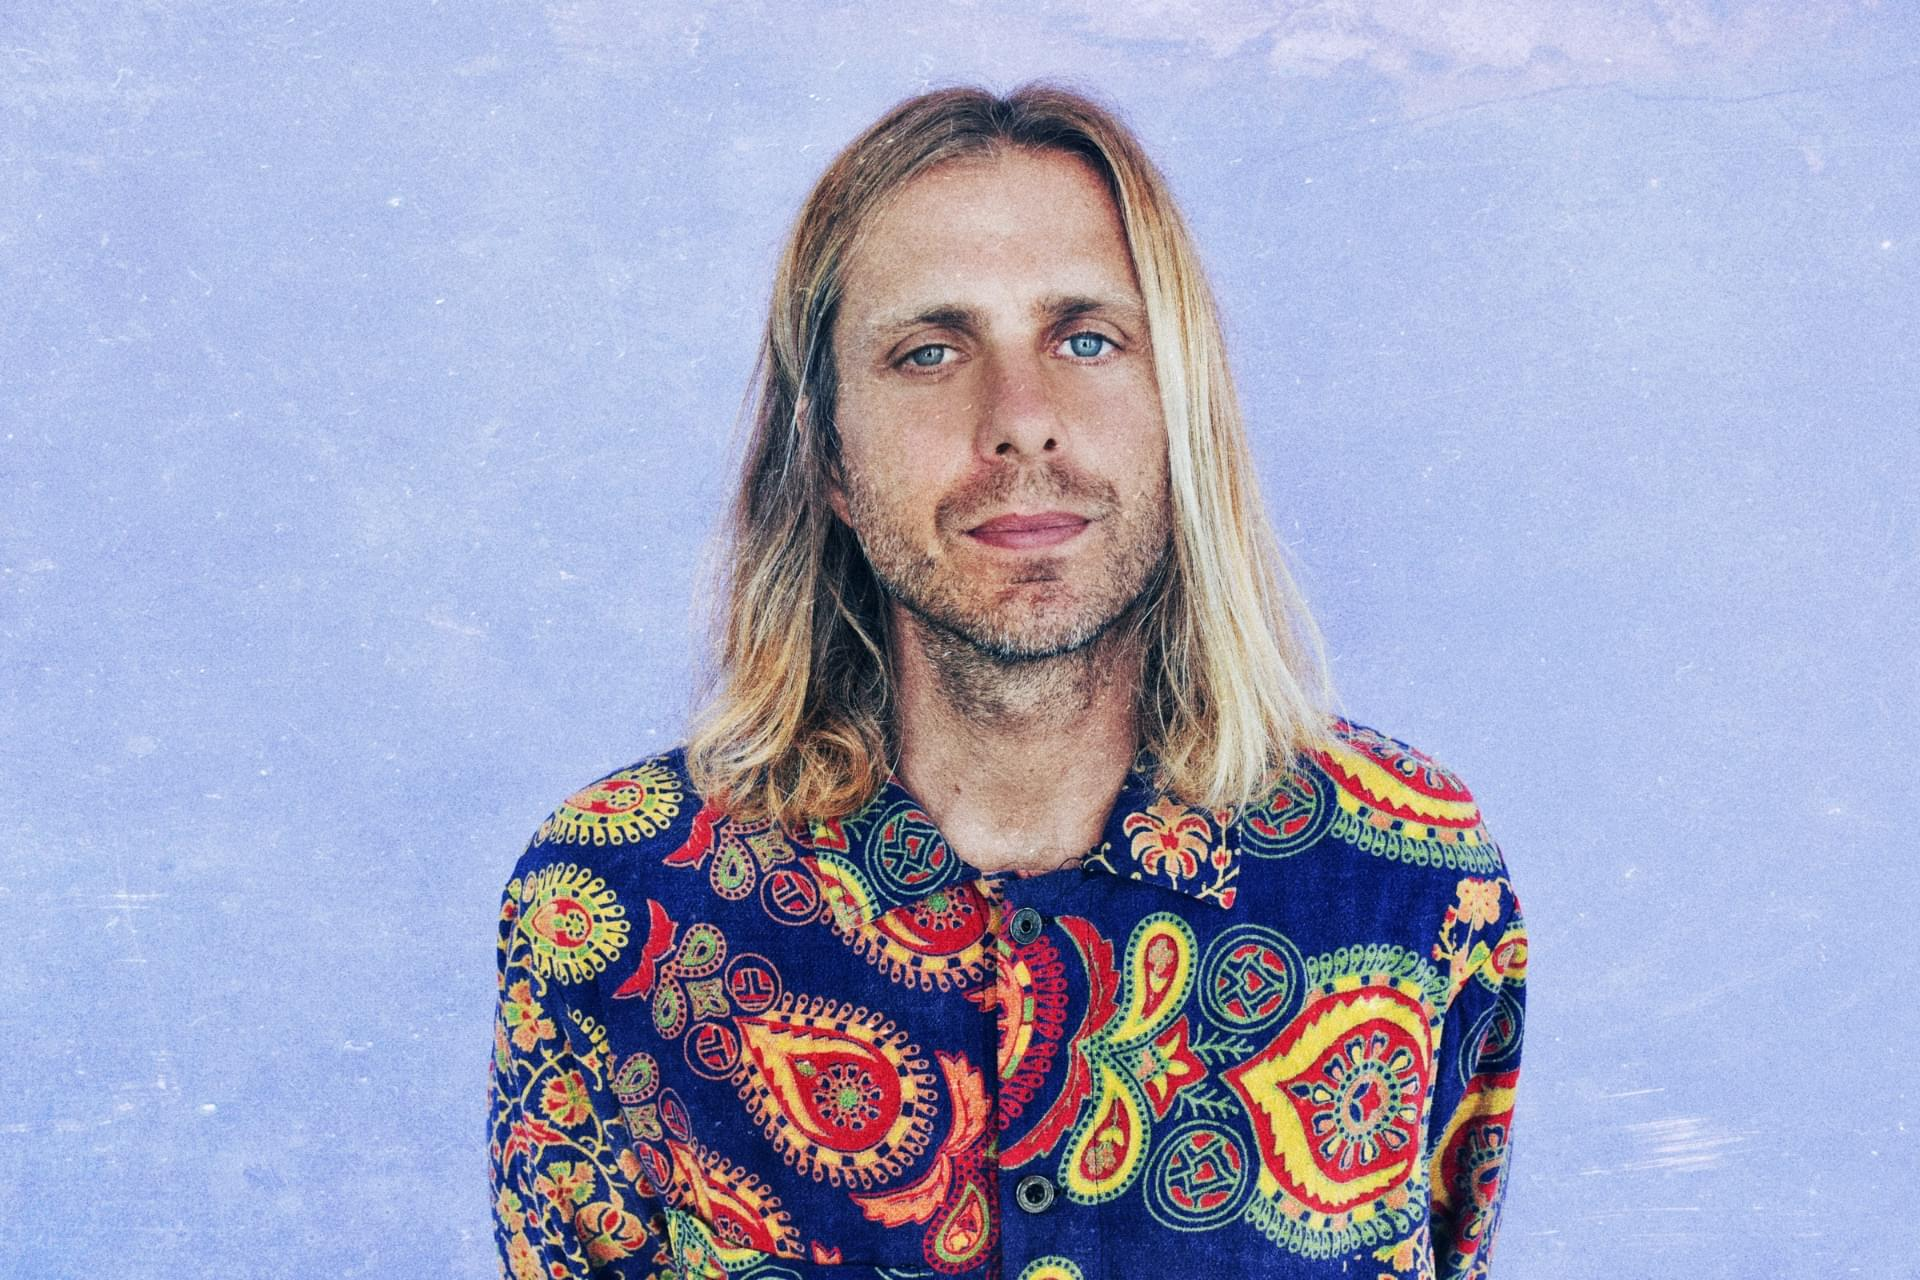 Enter to Win a Virtual Meet & Greet with AWOLNATION | Contest